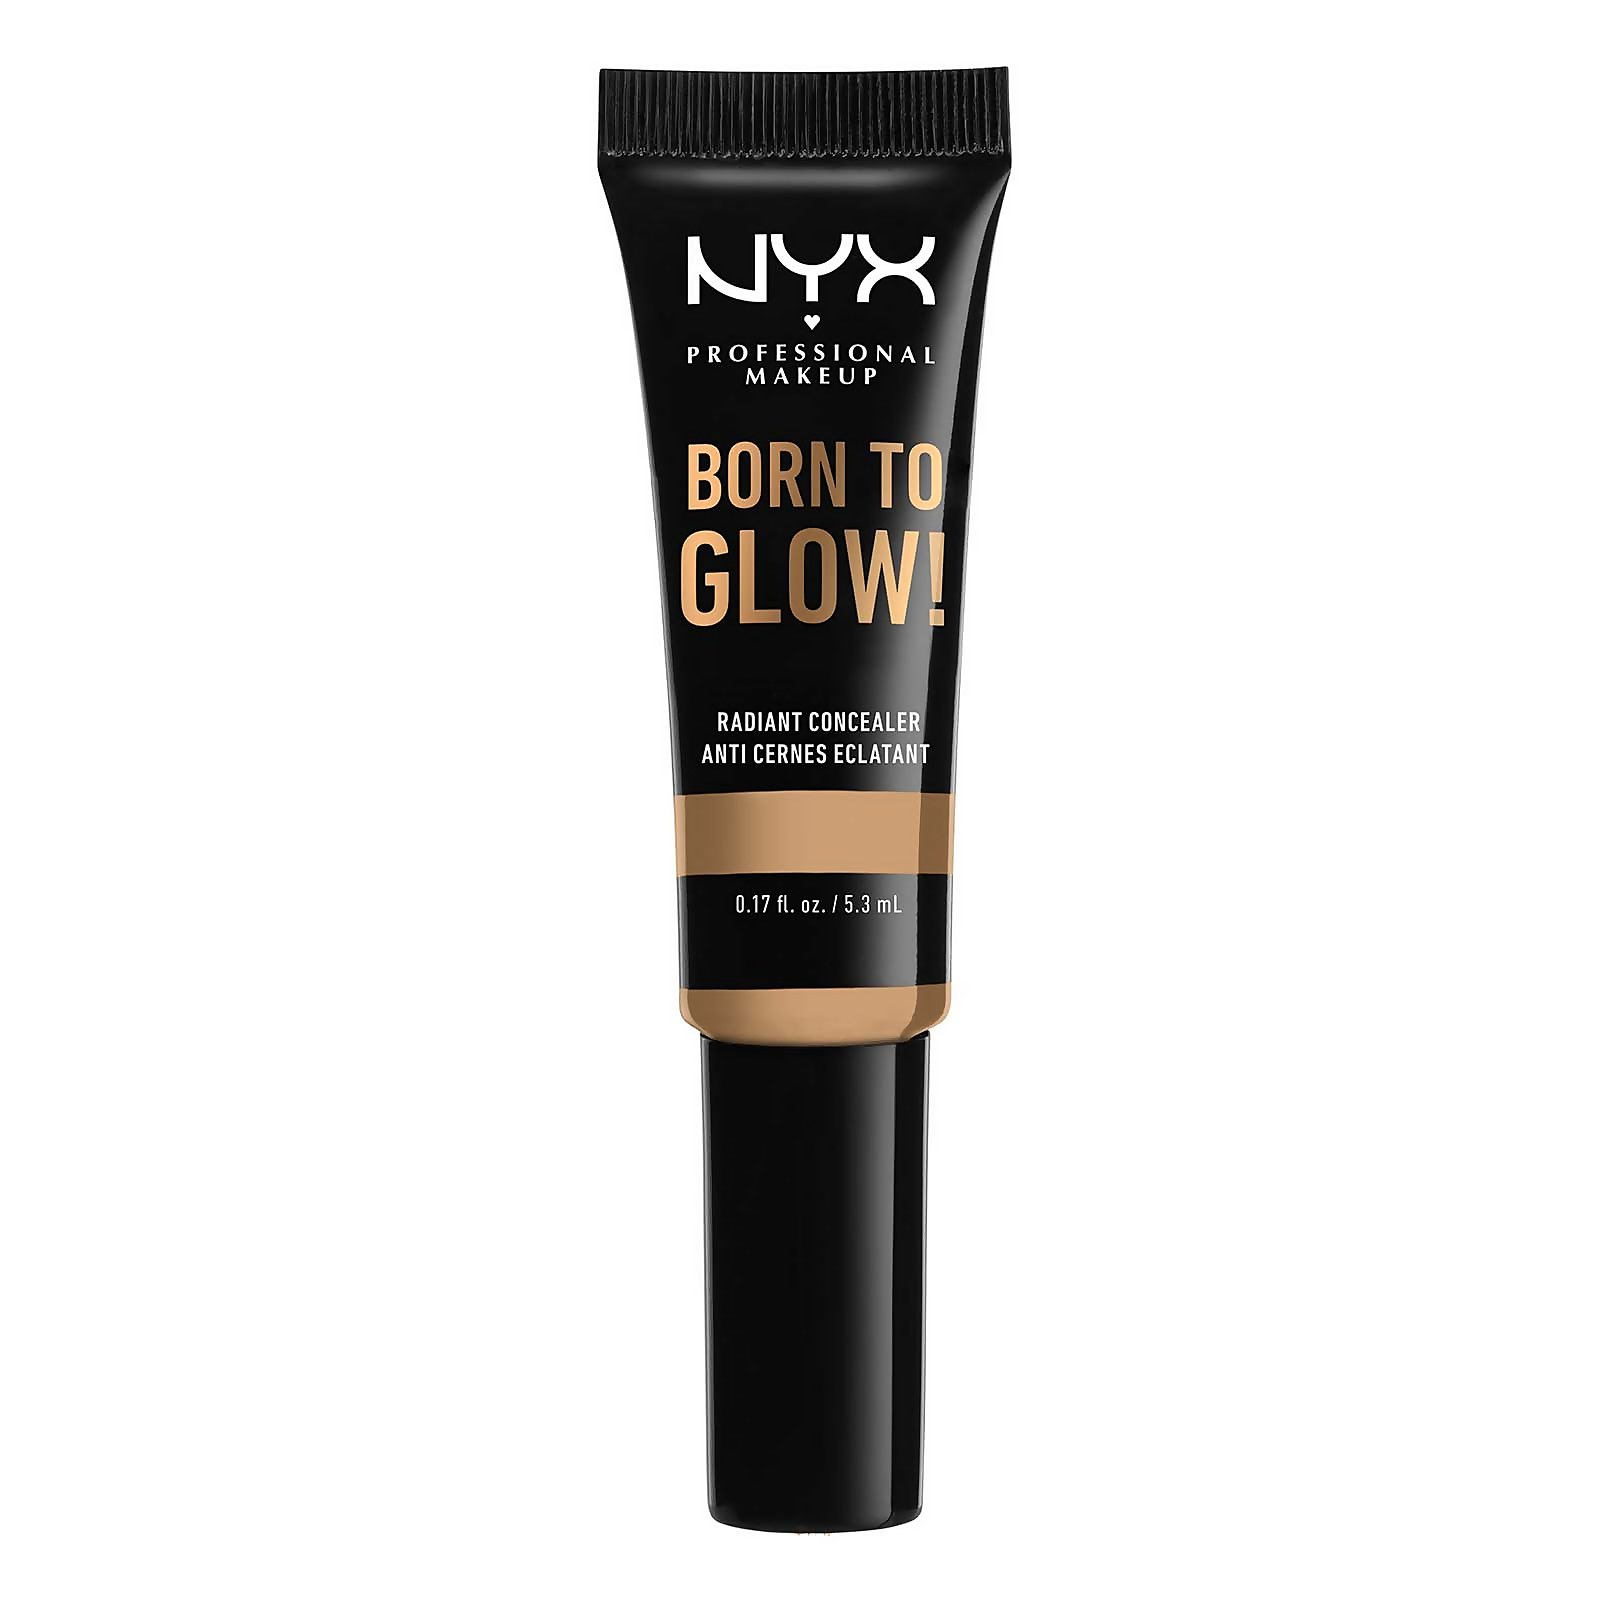 NYX Professional Makeup Born to Glow Radiant Concealer (Various Shades) - Beige